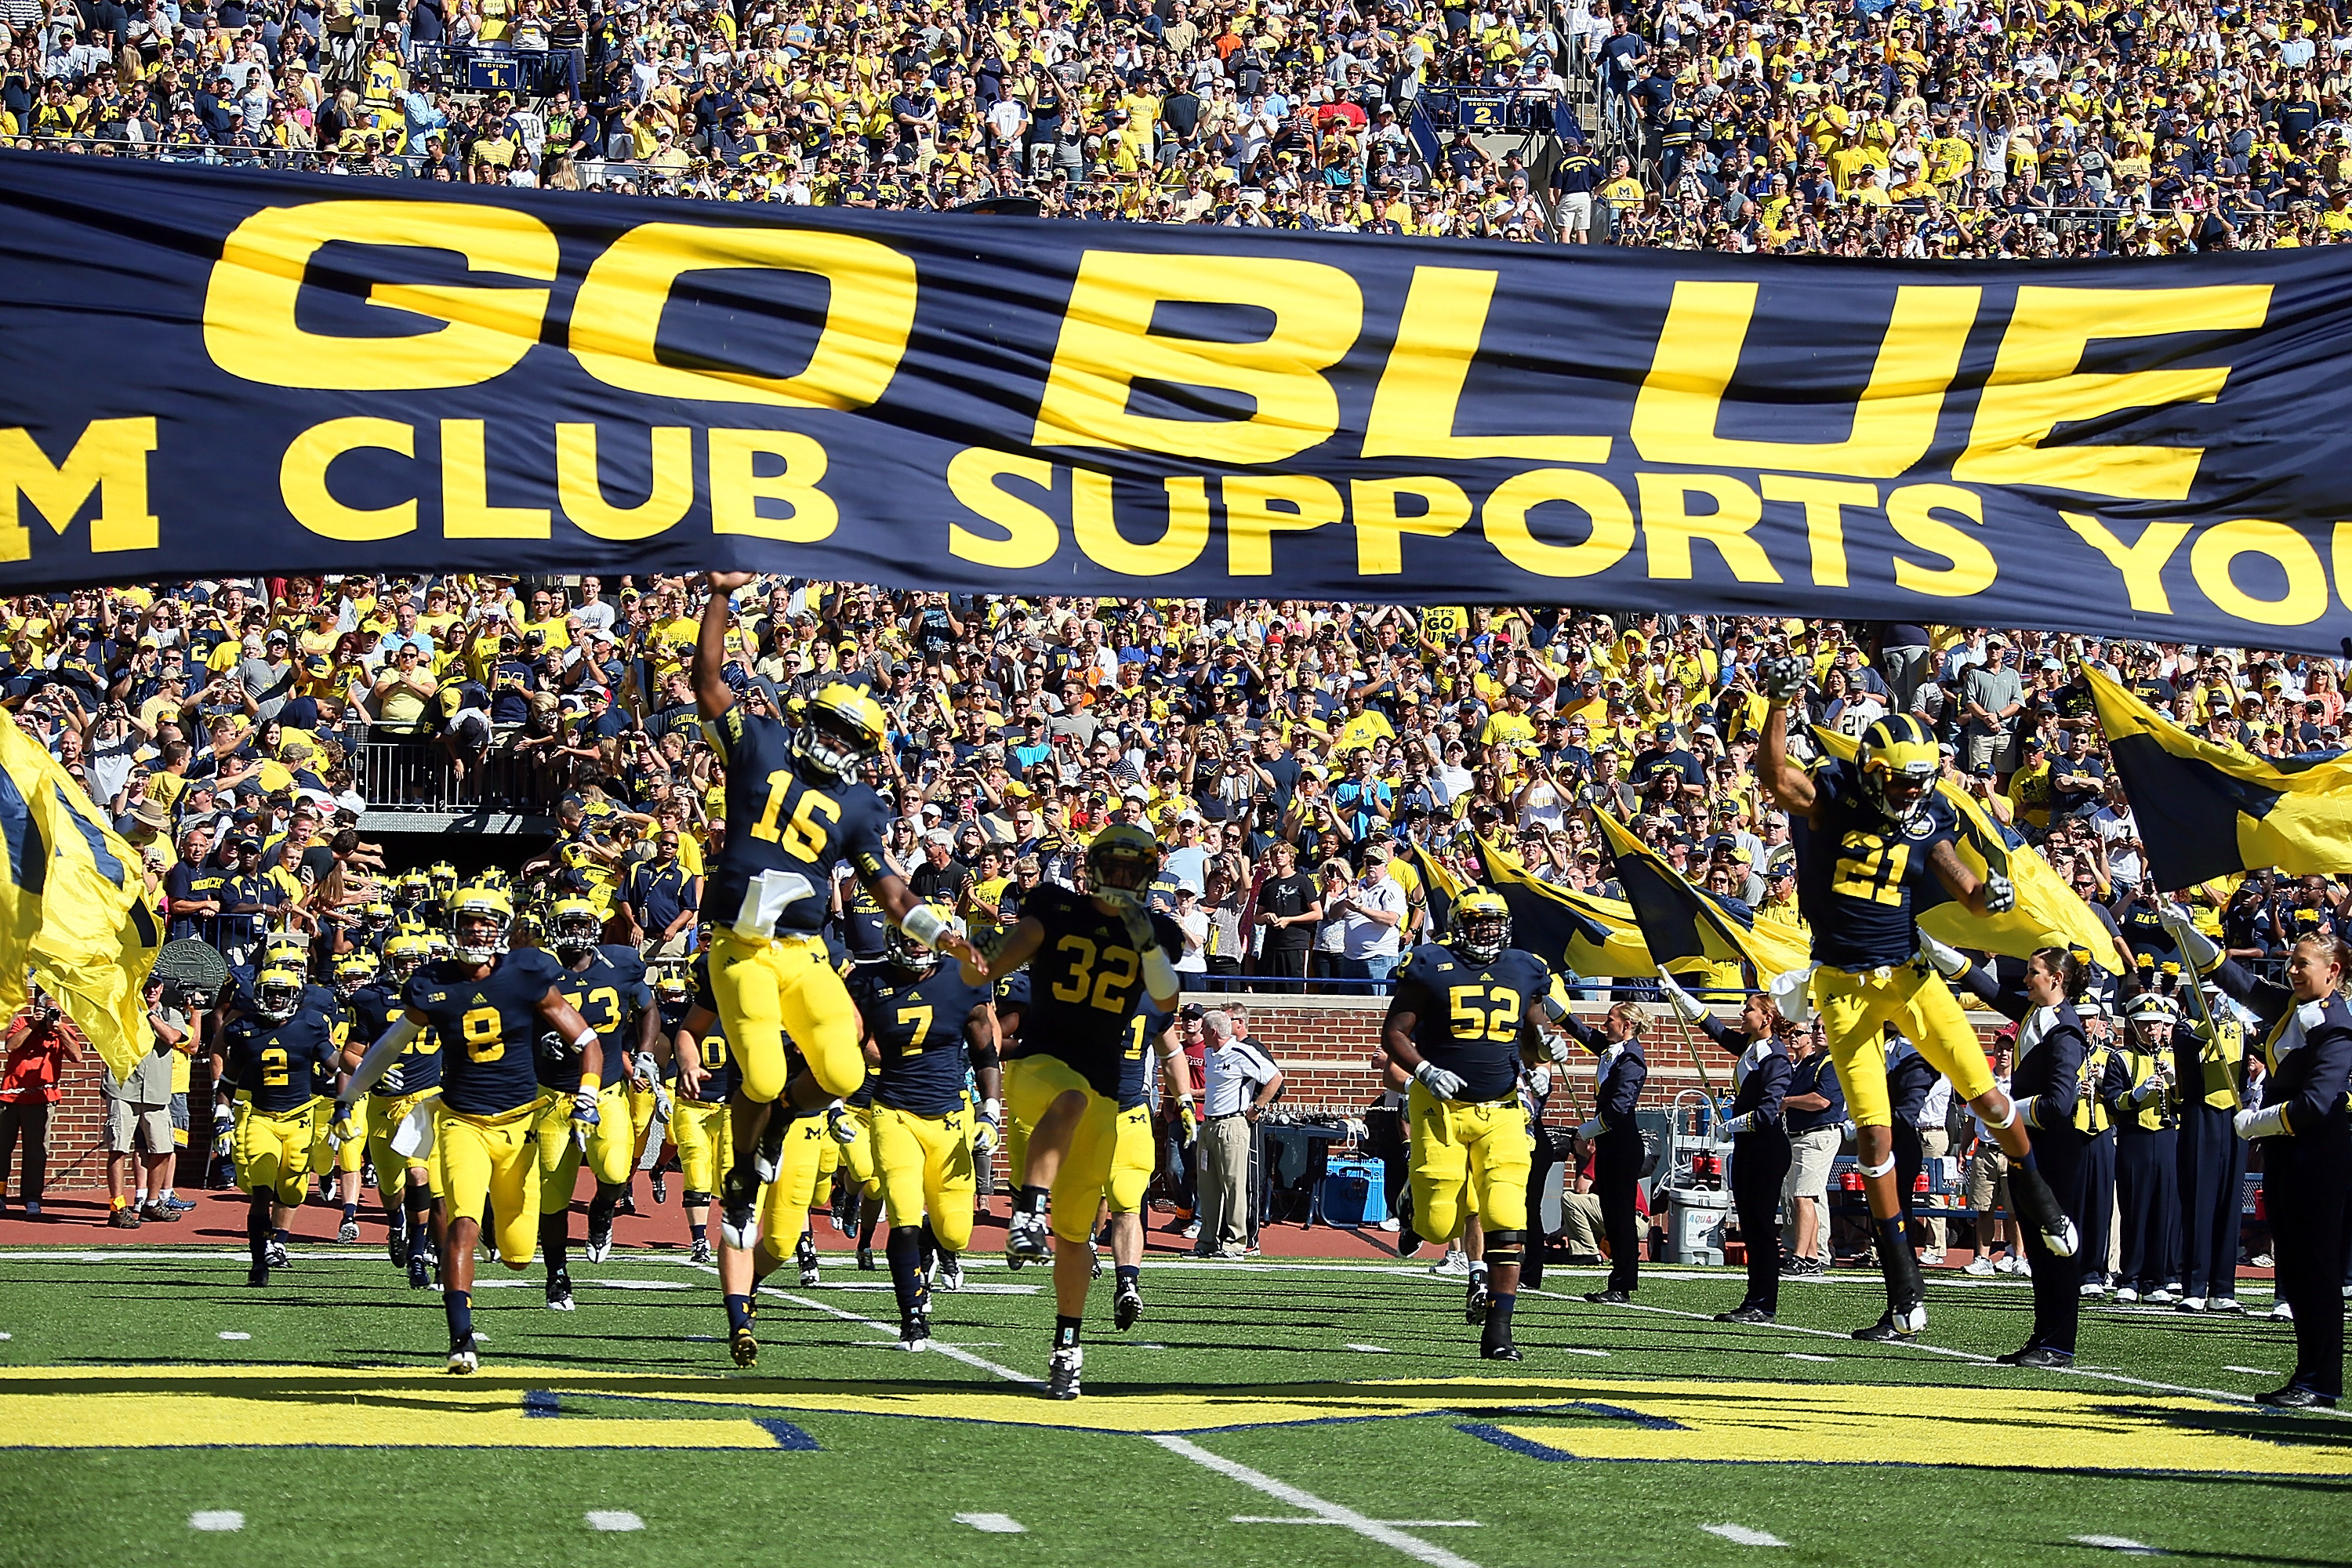 ANN ARBOR, MI - SEPTEMBER 15:  Denard Robinson #16 of the University of Michigan Wolverines leads his team to the field before a Big Ten College football game against the Univerity of Massachusetts Minutemen at Michigan Stadium on September 15, 2012 in Ann Arbor, Michigan.  (Photo by Dave Reginek/Getty Images)